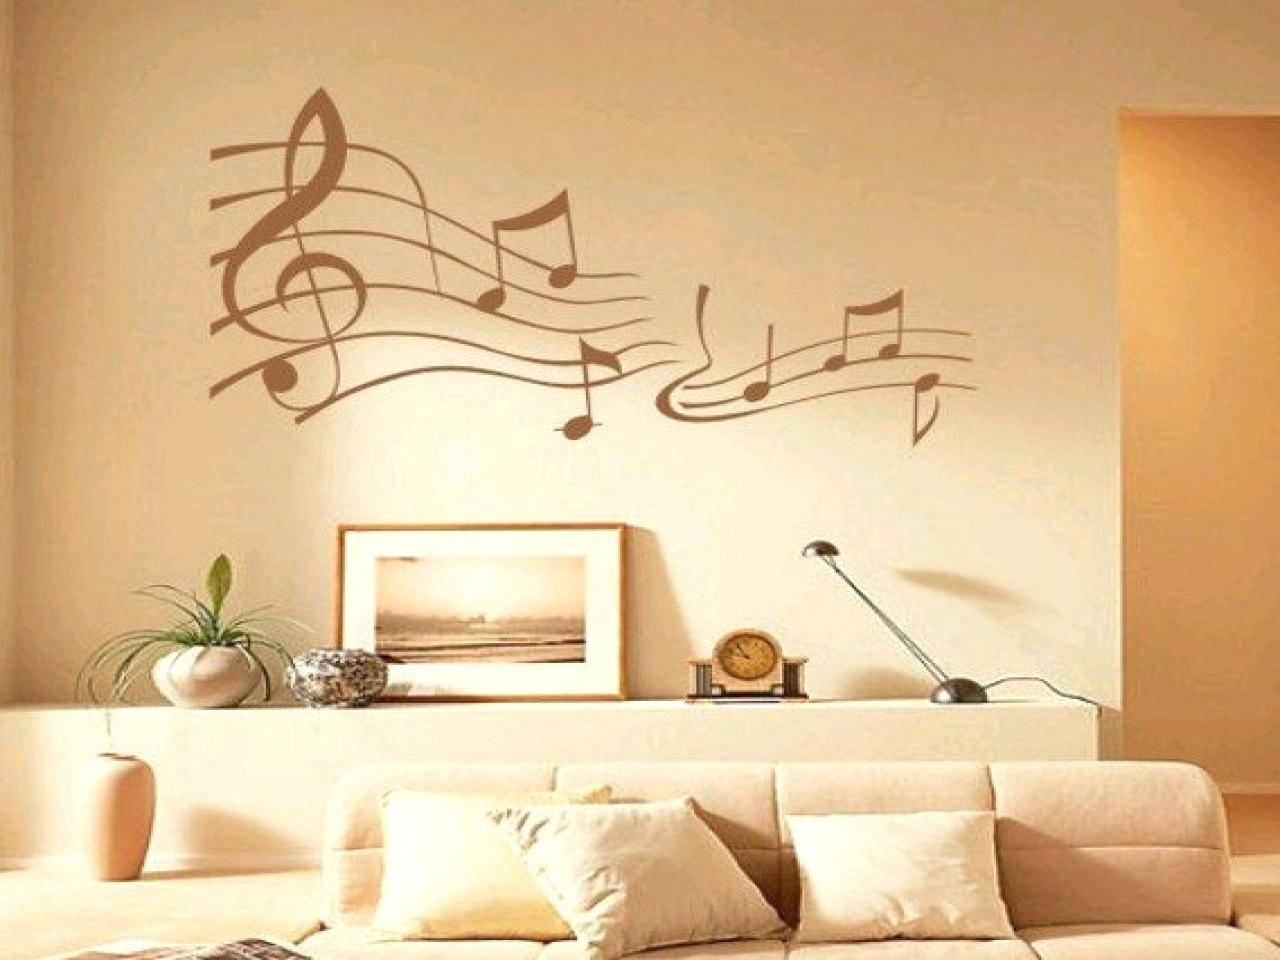 Wall Ideas : Music Themed Wedding Room Decorations Bedroom Decor 2 Regarding Recent Music Themed Wall Art (View 22 of 25)